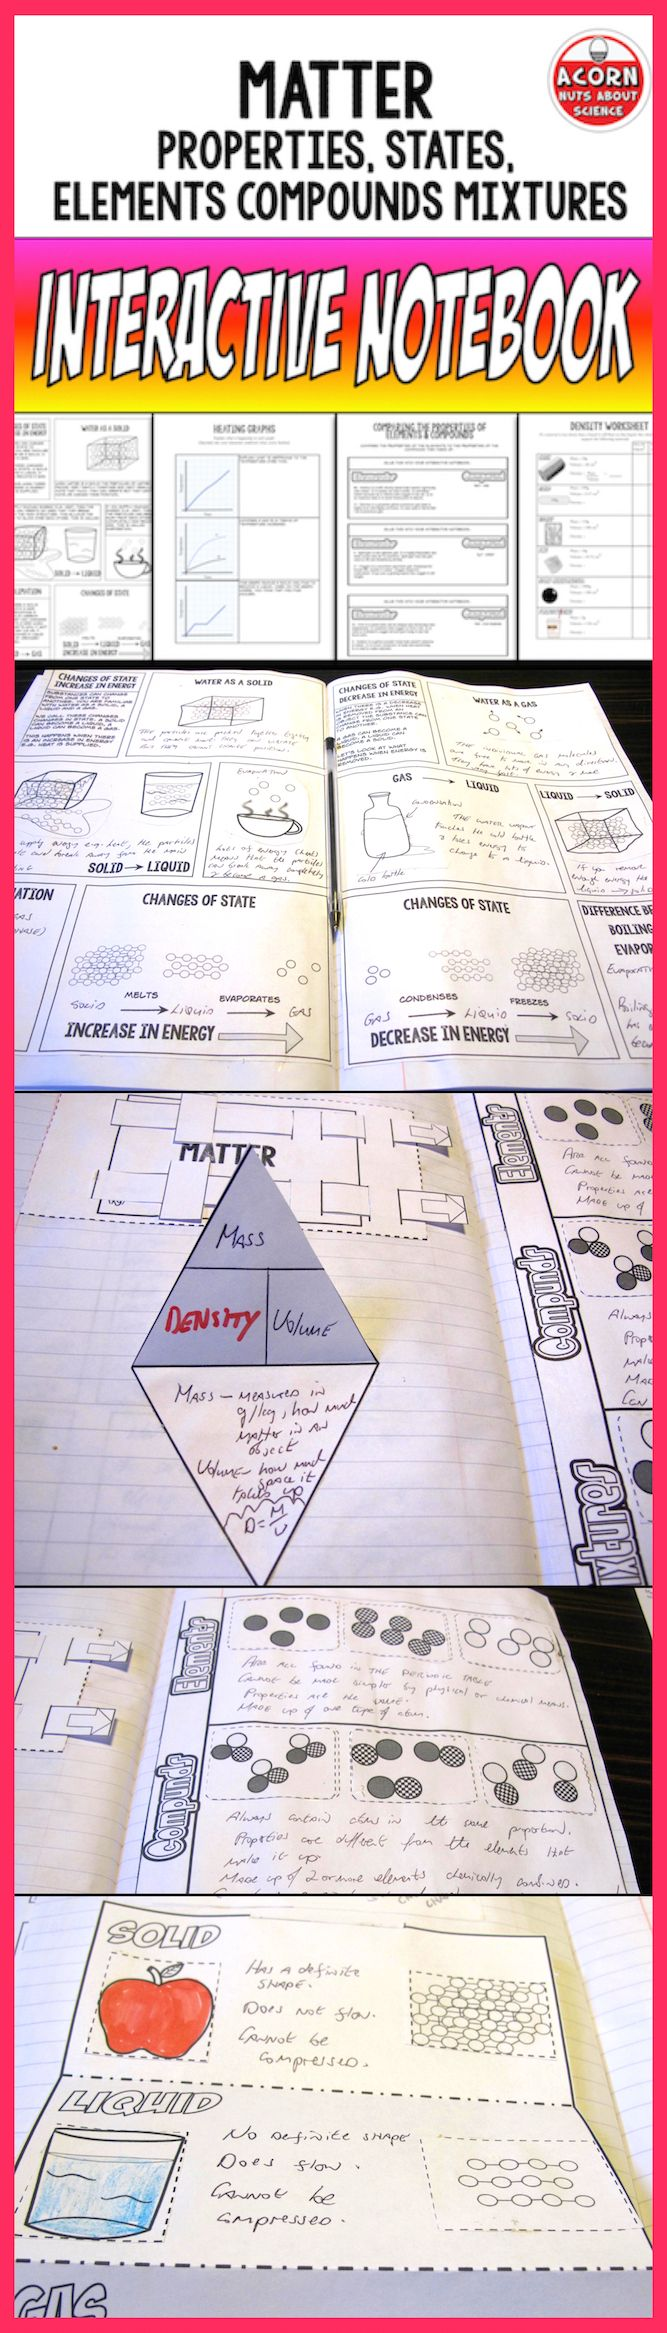 Science interactive notebook on matter, states of matter, properties of matter, elements compounds and mixtures.